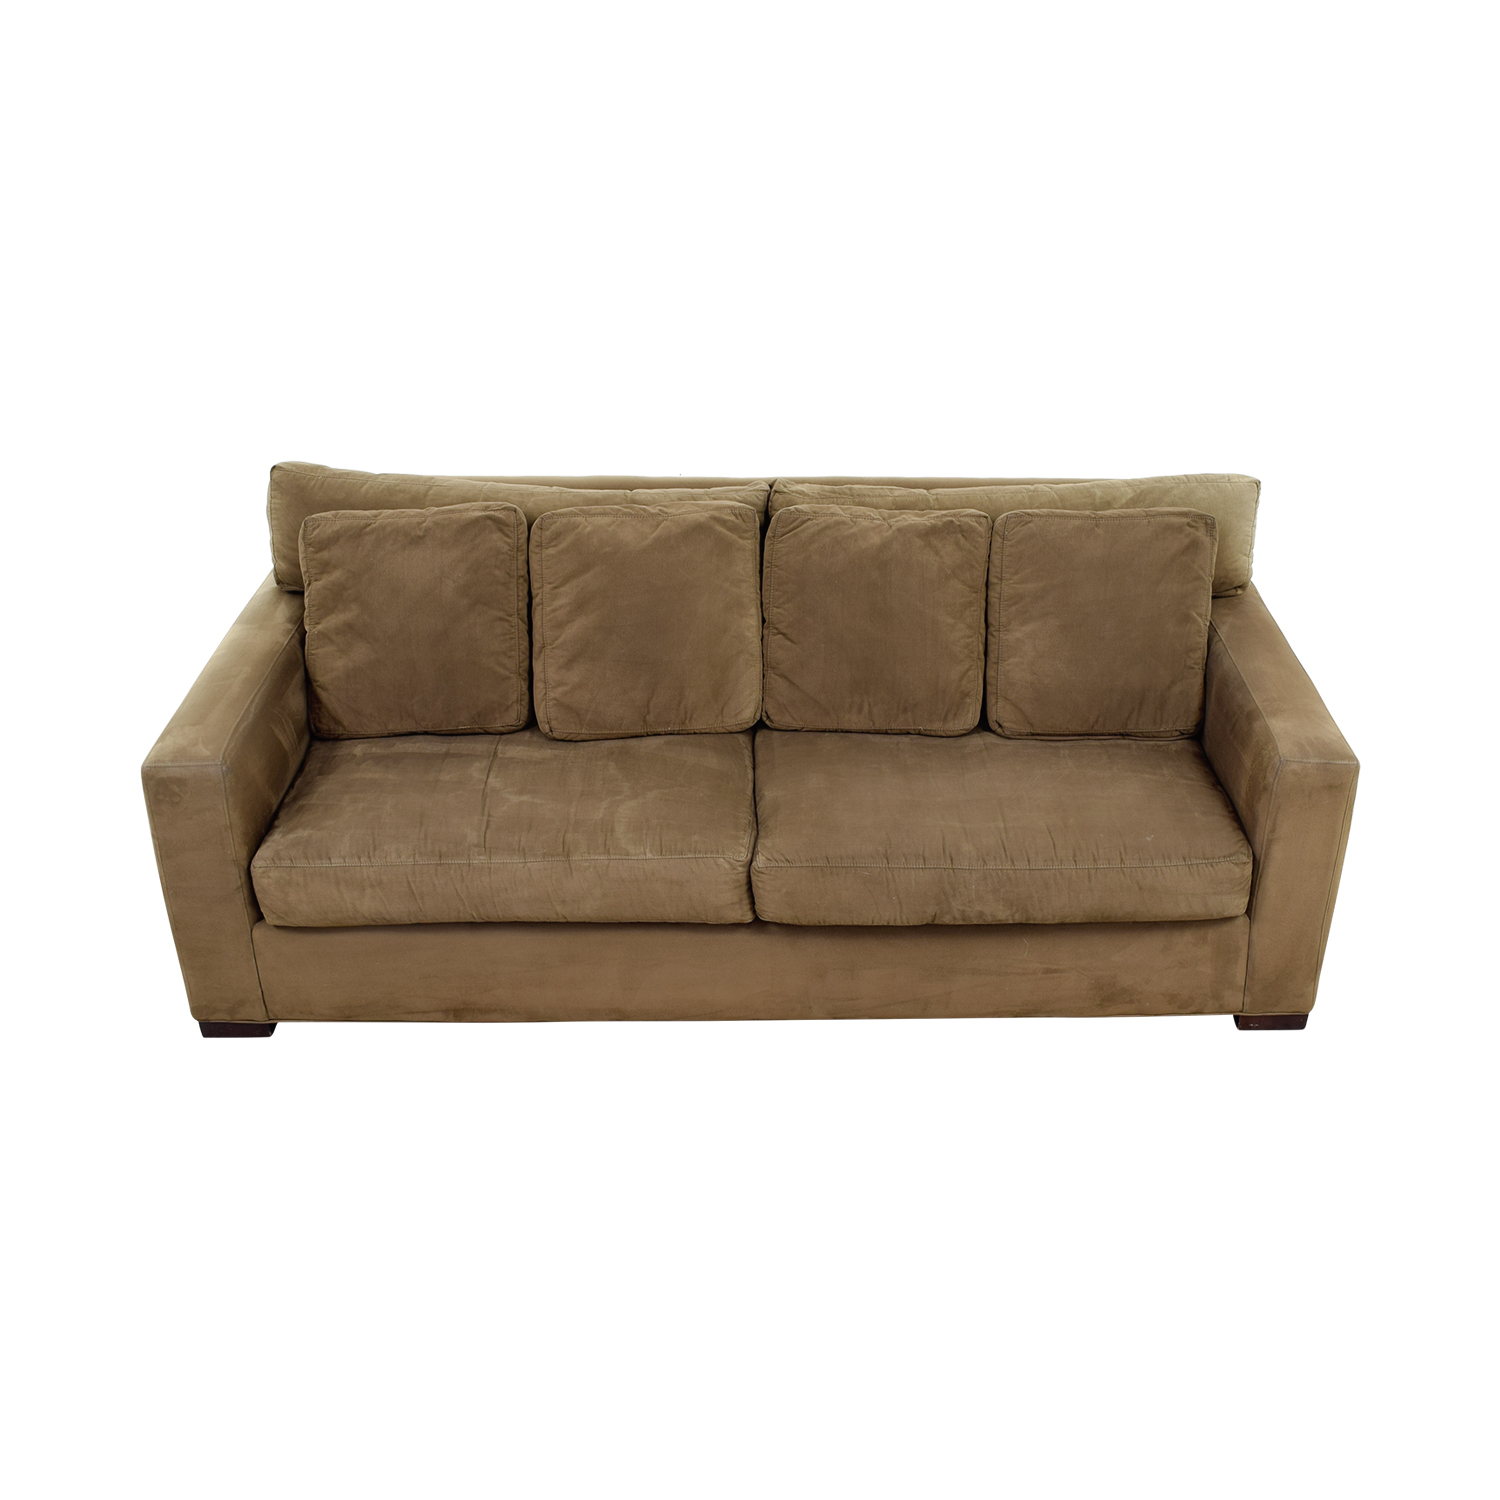 shop Crate & Barrel Crate & Barrel Axis II Brown Two-Cushion Sofa online